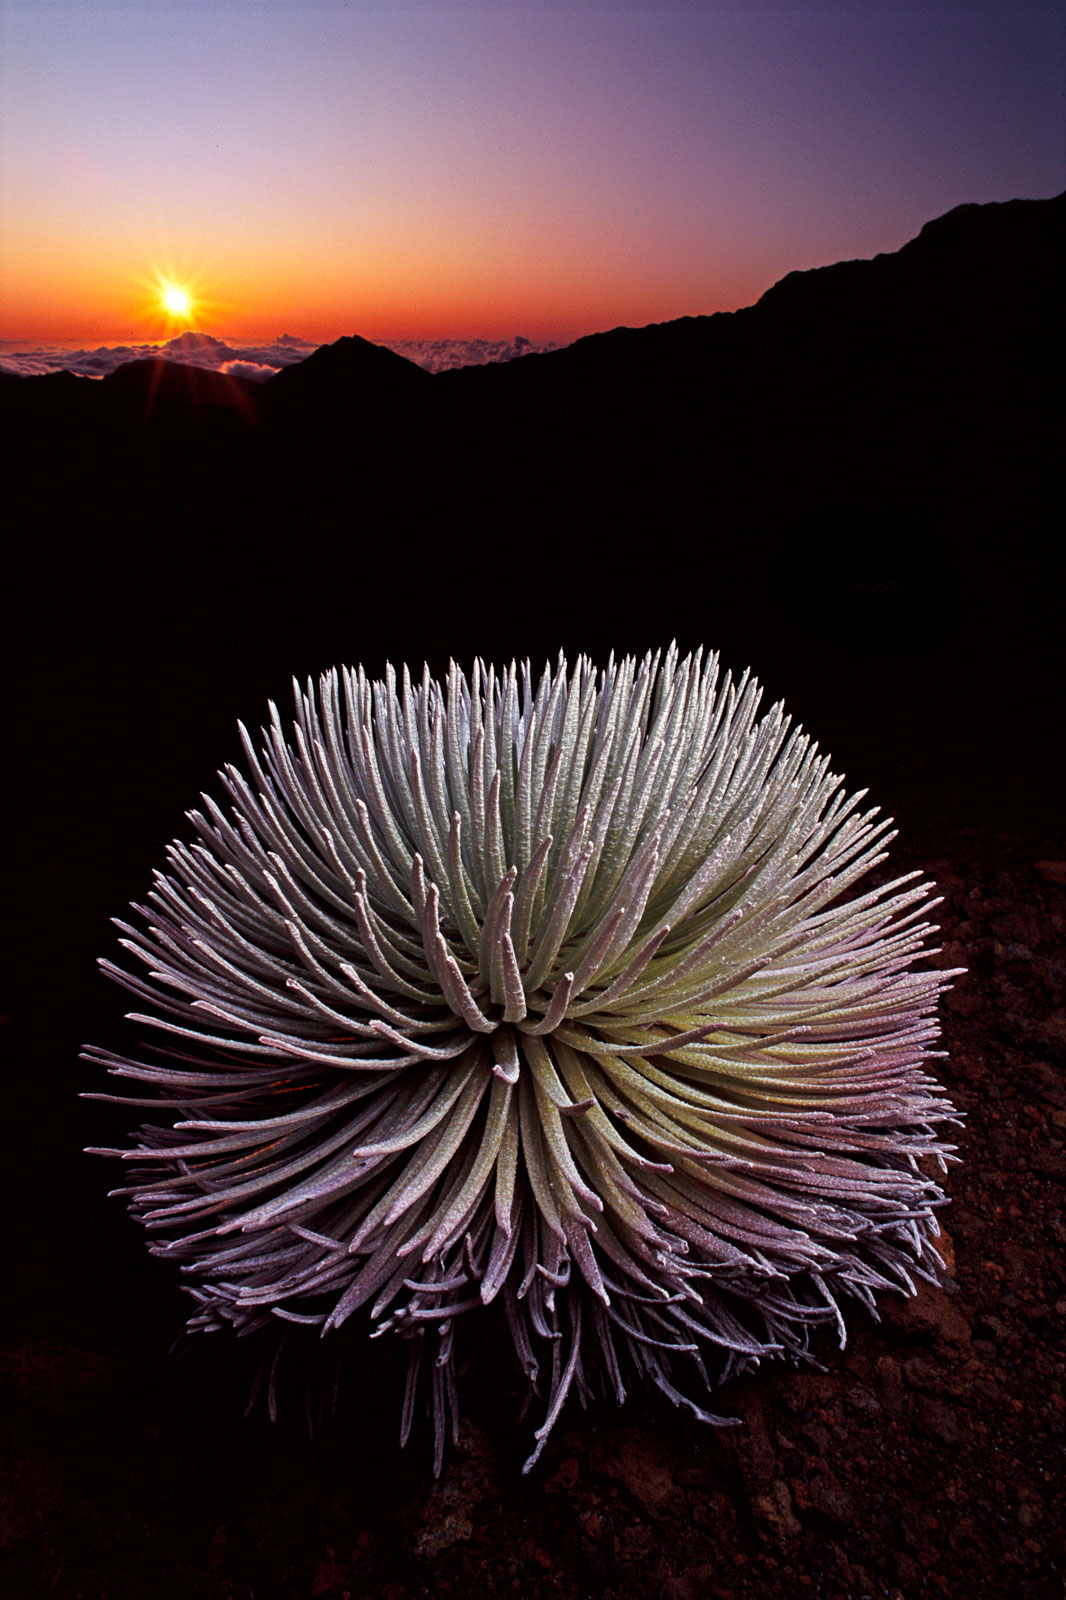 Silversword at sunset, Mauna Kea, Hawaii, USA